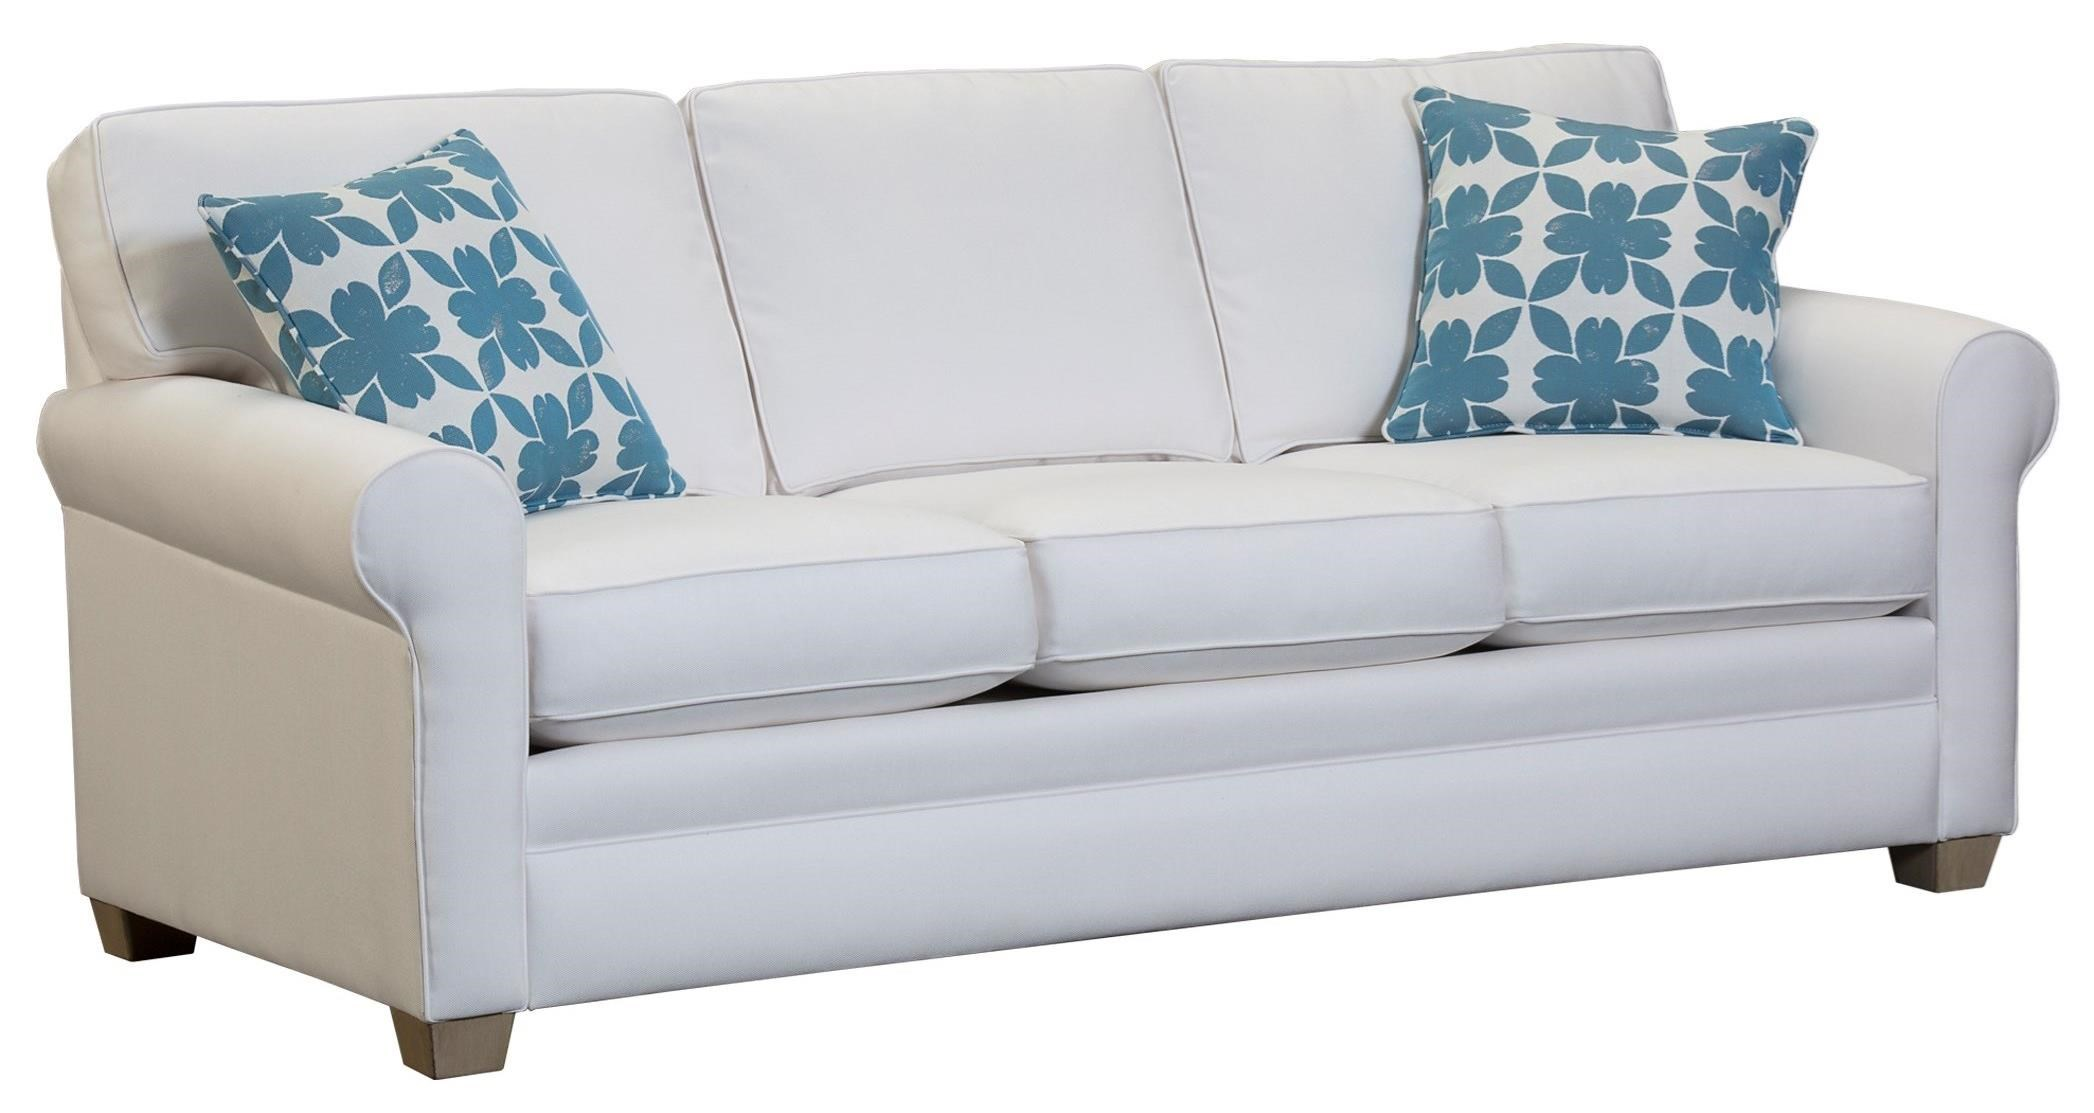 Urban Sofa Nederland Capris Furniture 402 Casual Rolled Arm Sofa Howell Furniture Sofas